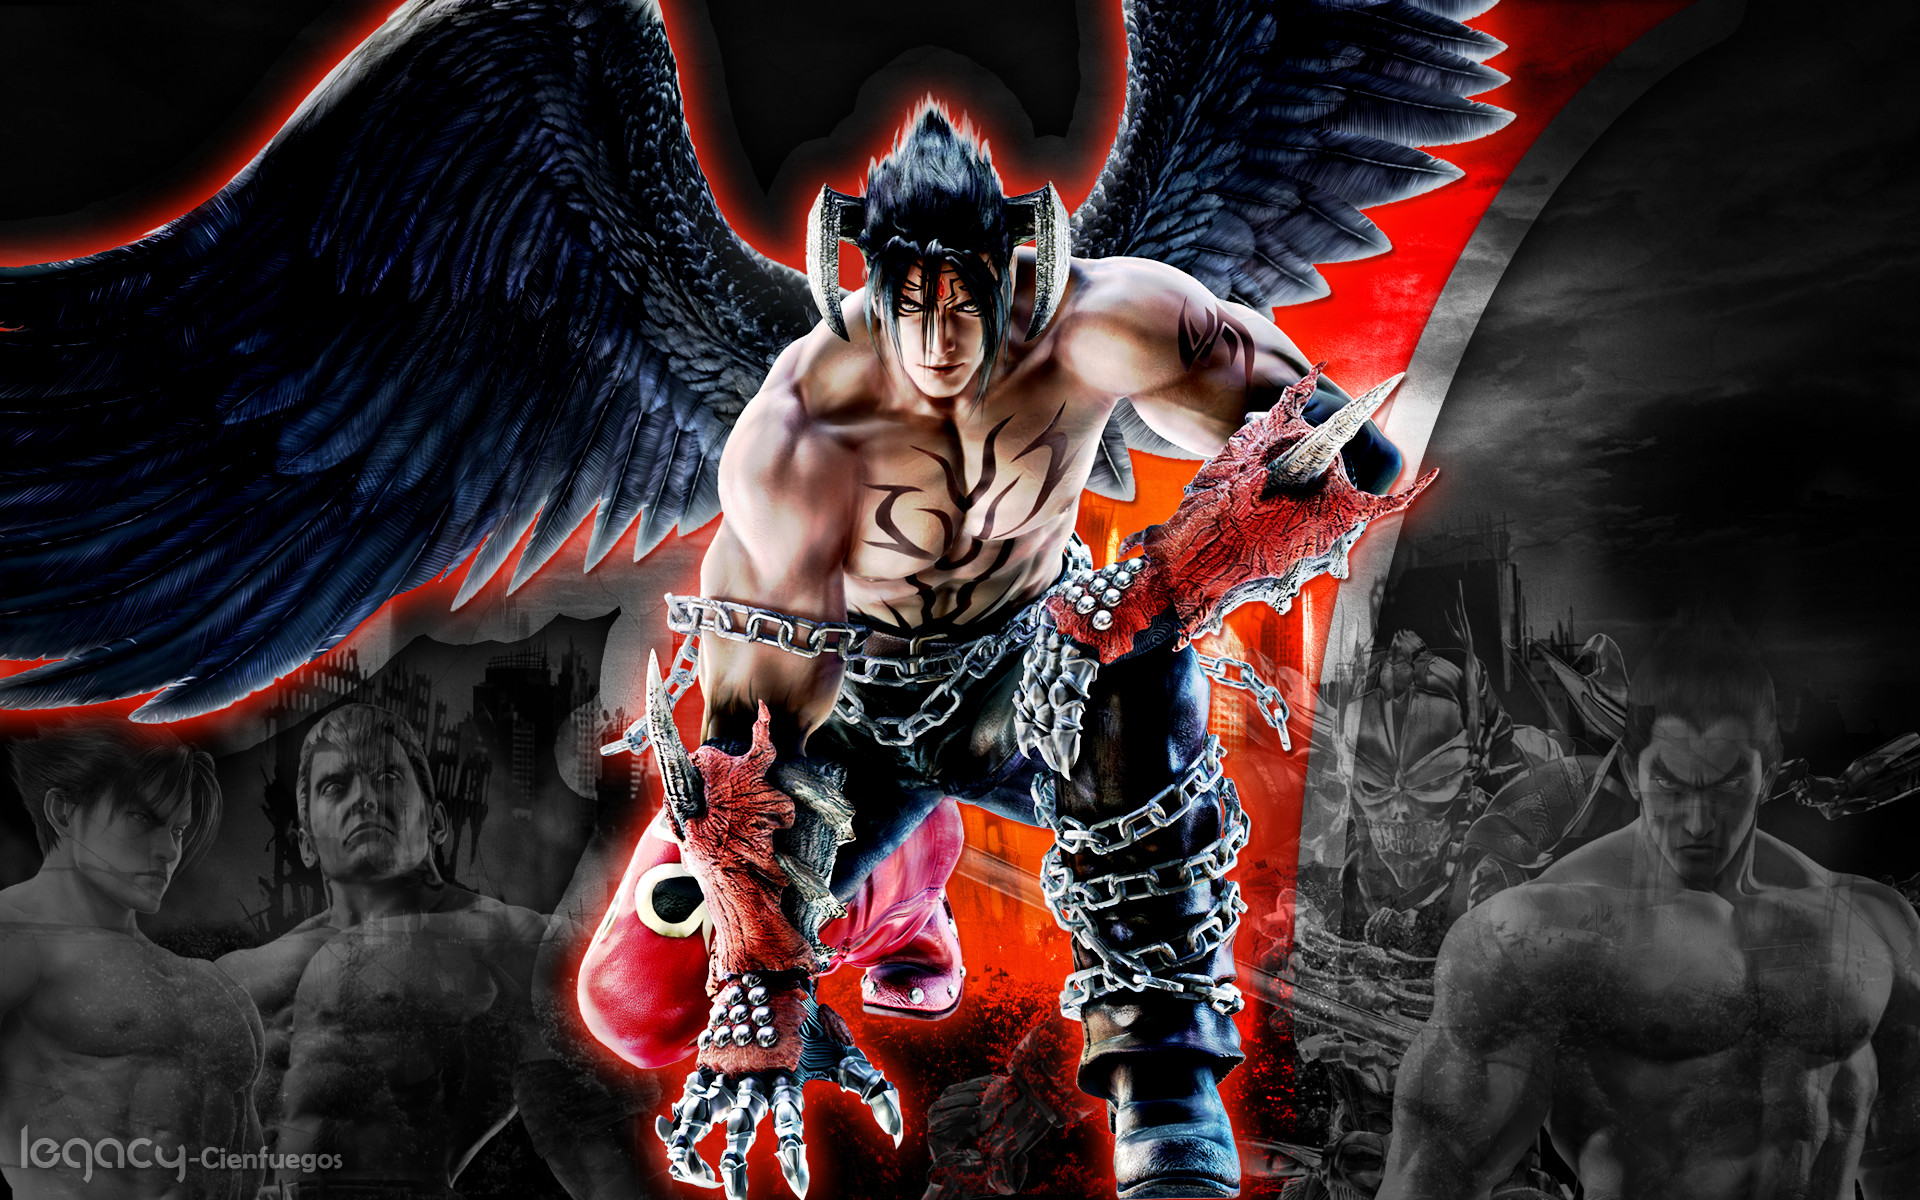 Jin Kazama Wallpaper Tekken 6 ①